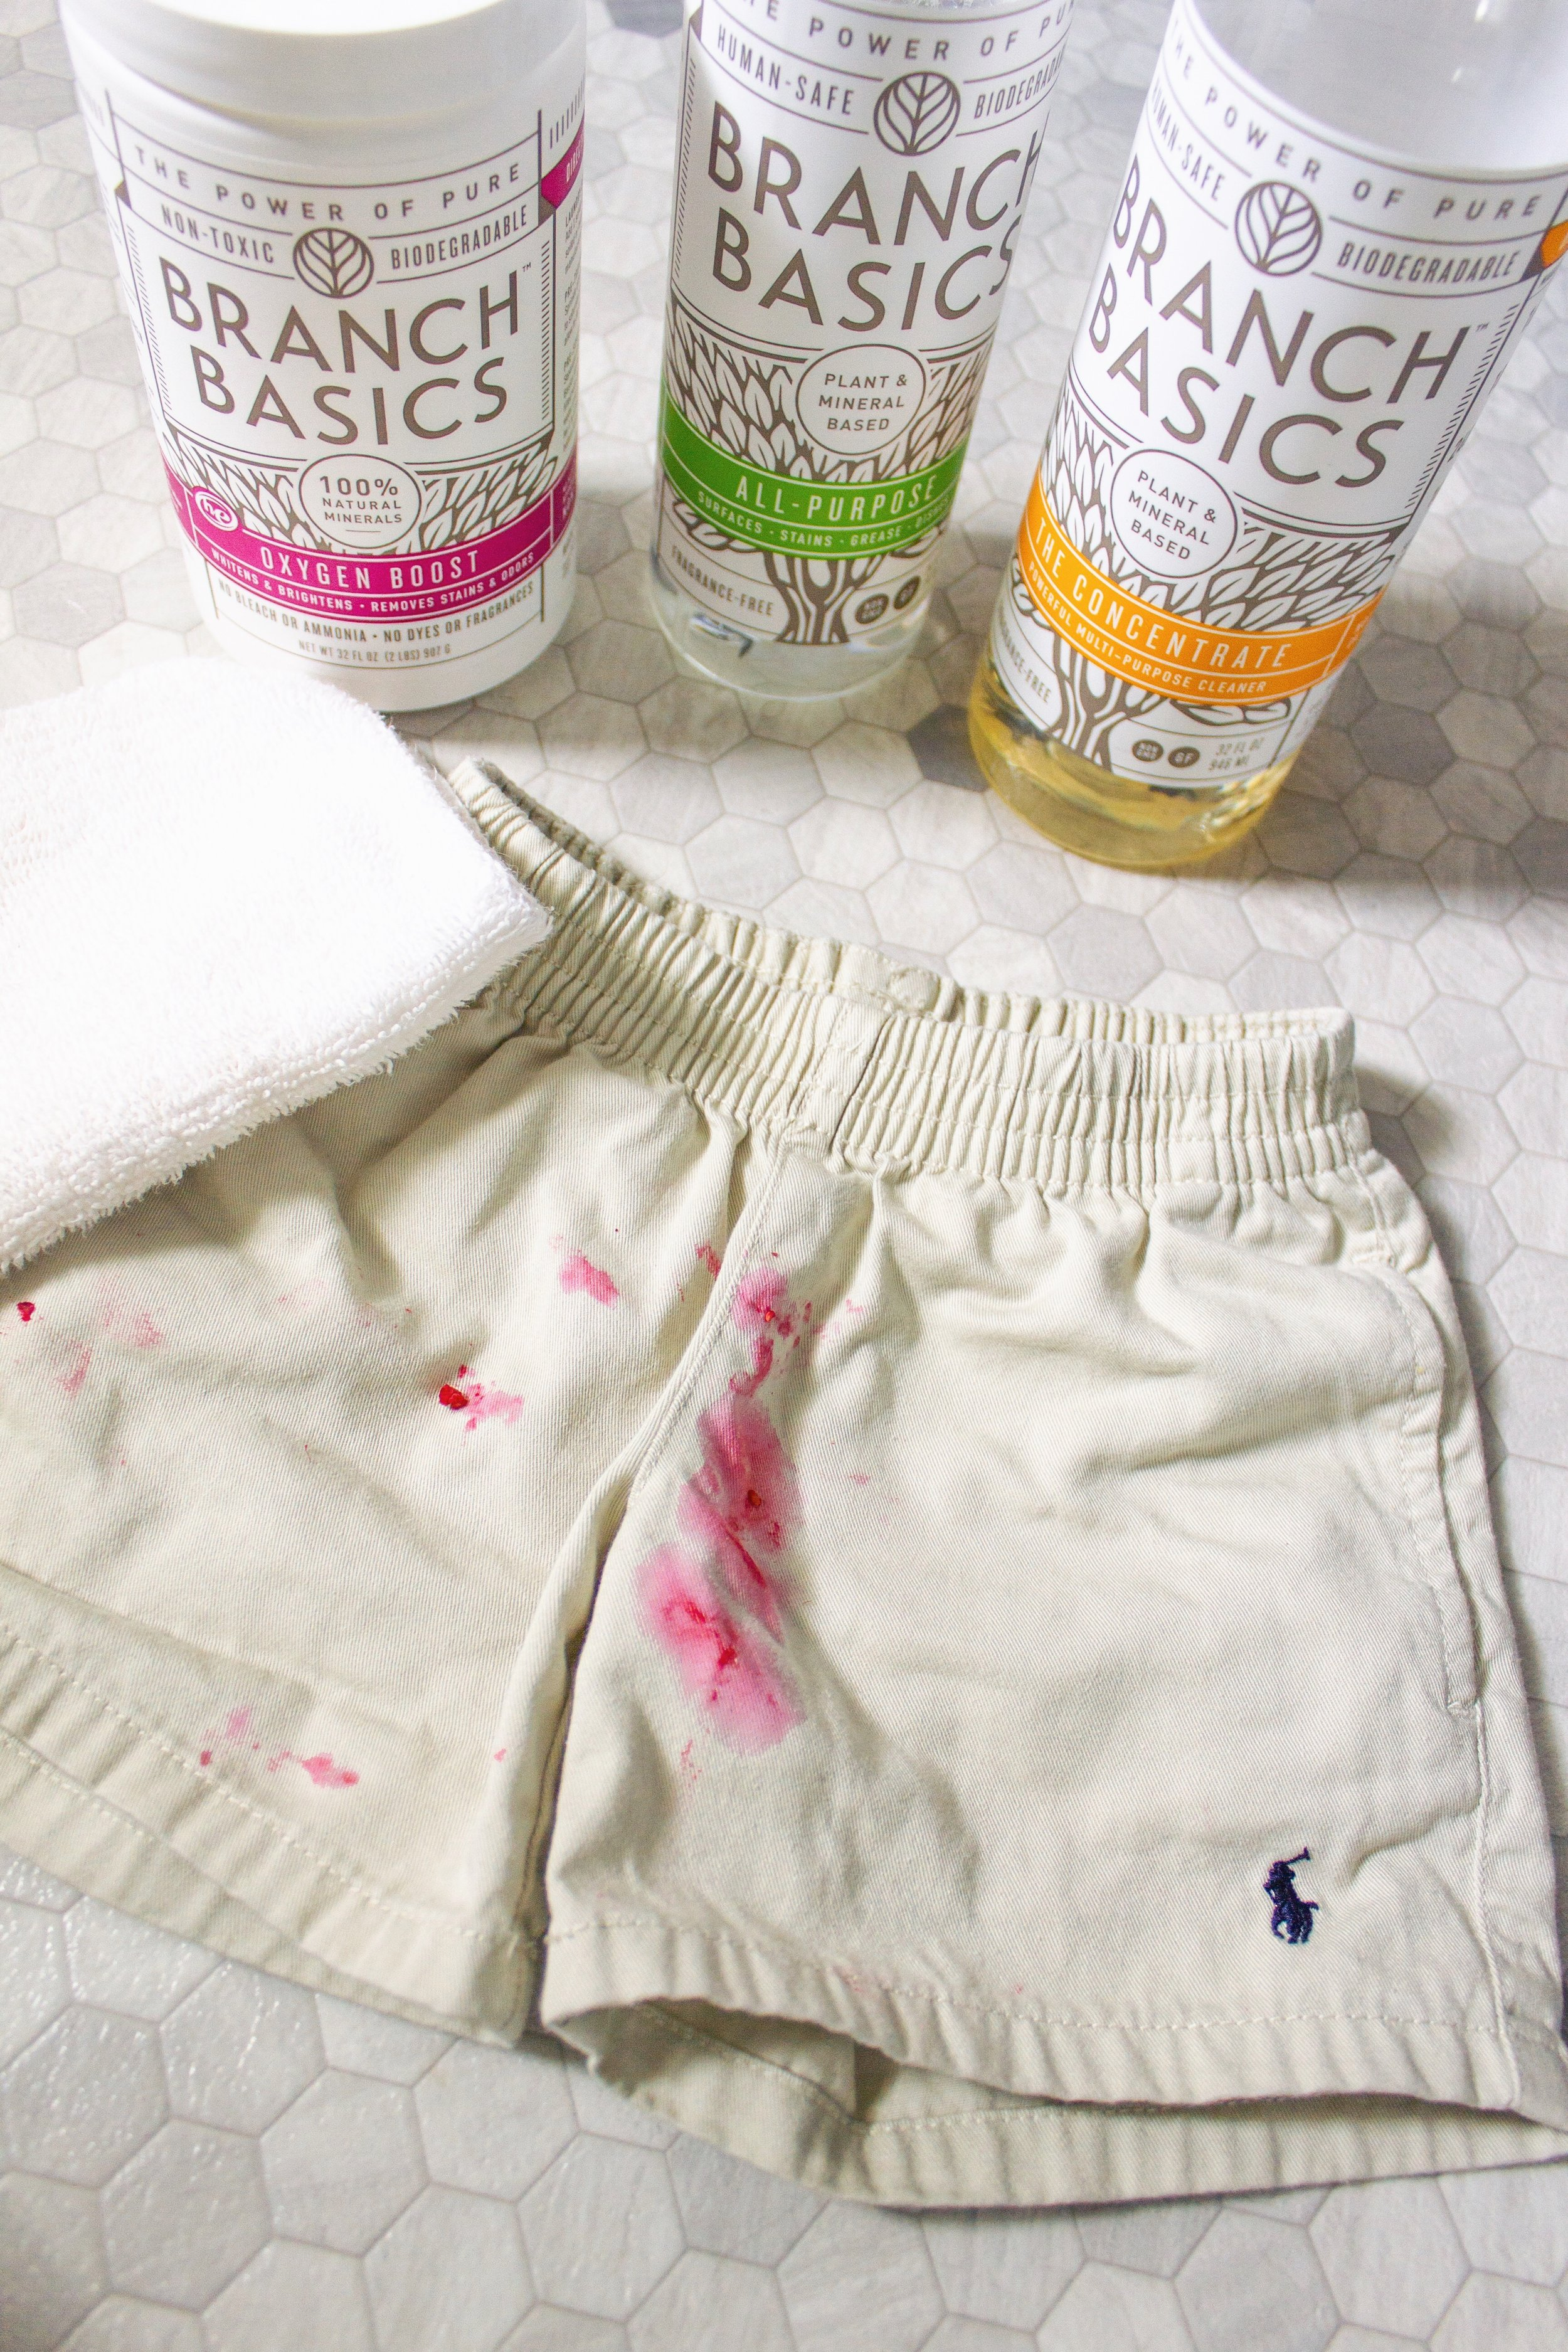 BEFORE… - Bright red raspberry stains all over his adorable khaki shorts.